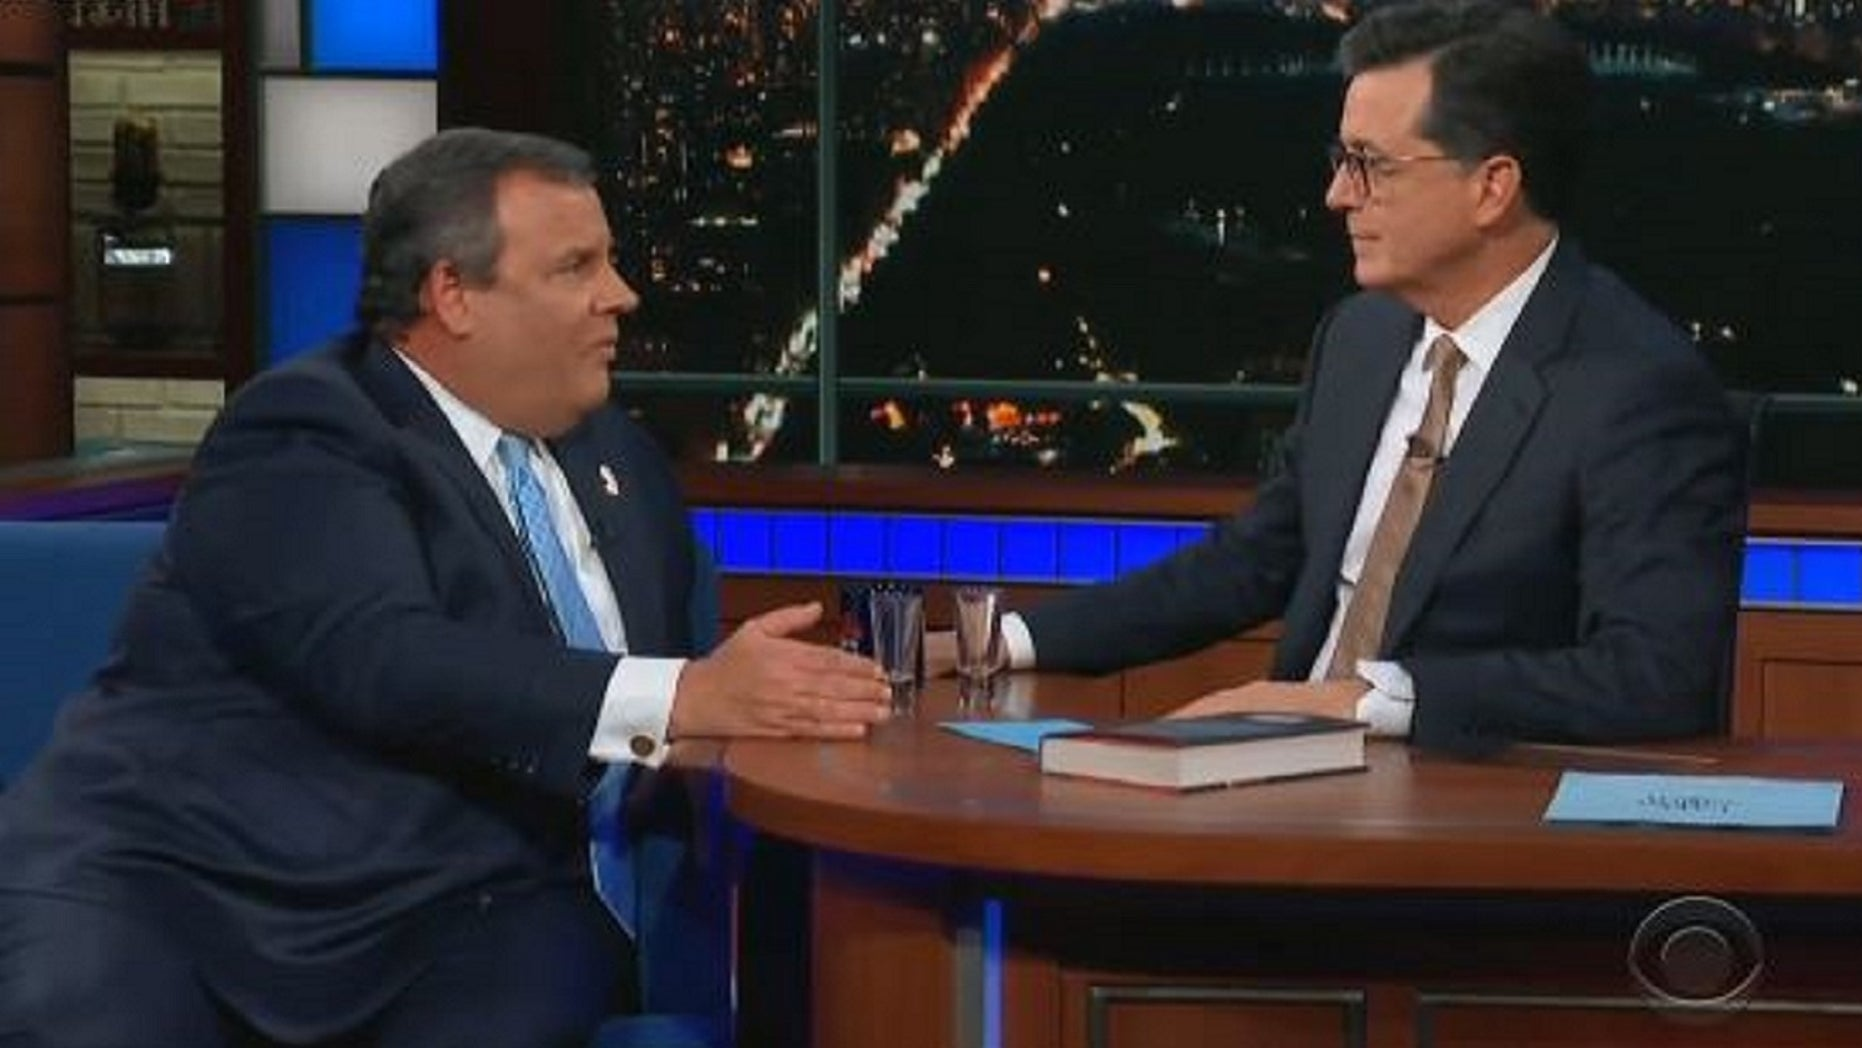 Chris Christie criticizes Trump with Stephen Colbert over tequila